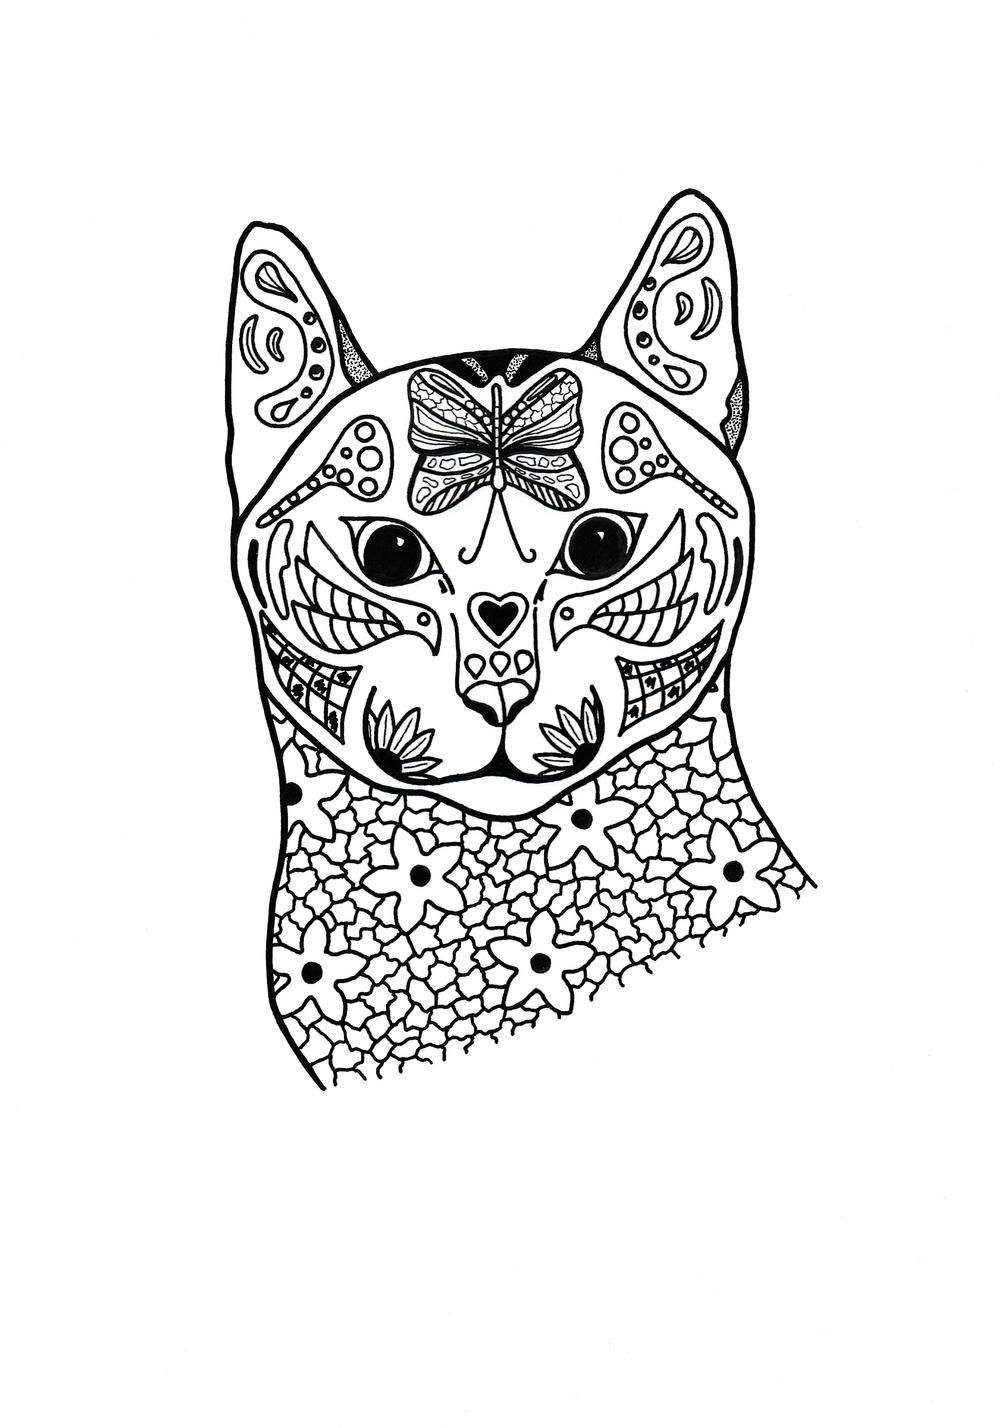 Springtime Cat Coloring Page Animal Coloring Pages Cat Coloring